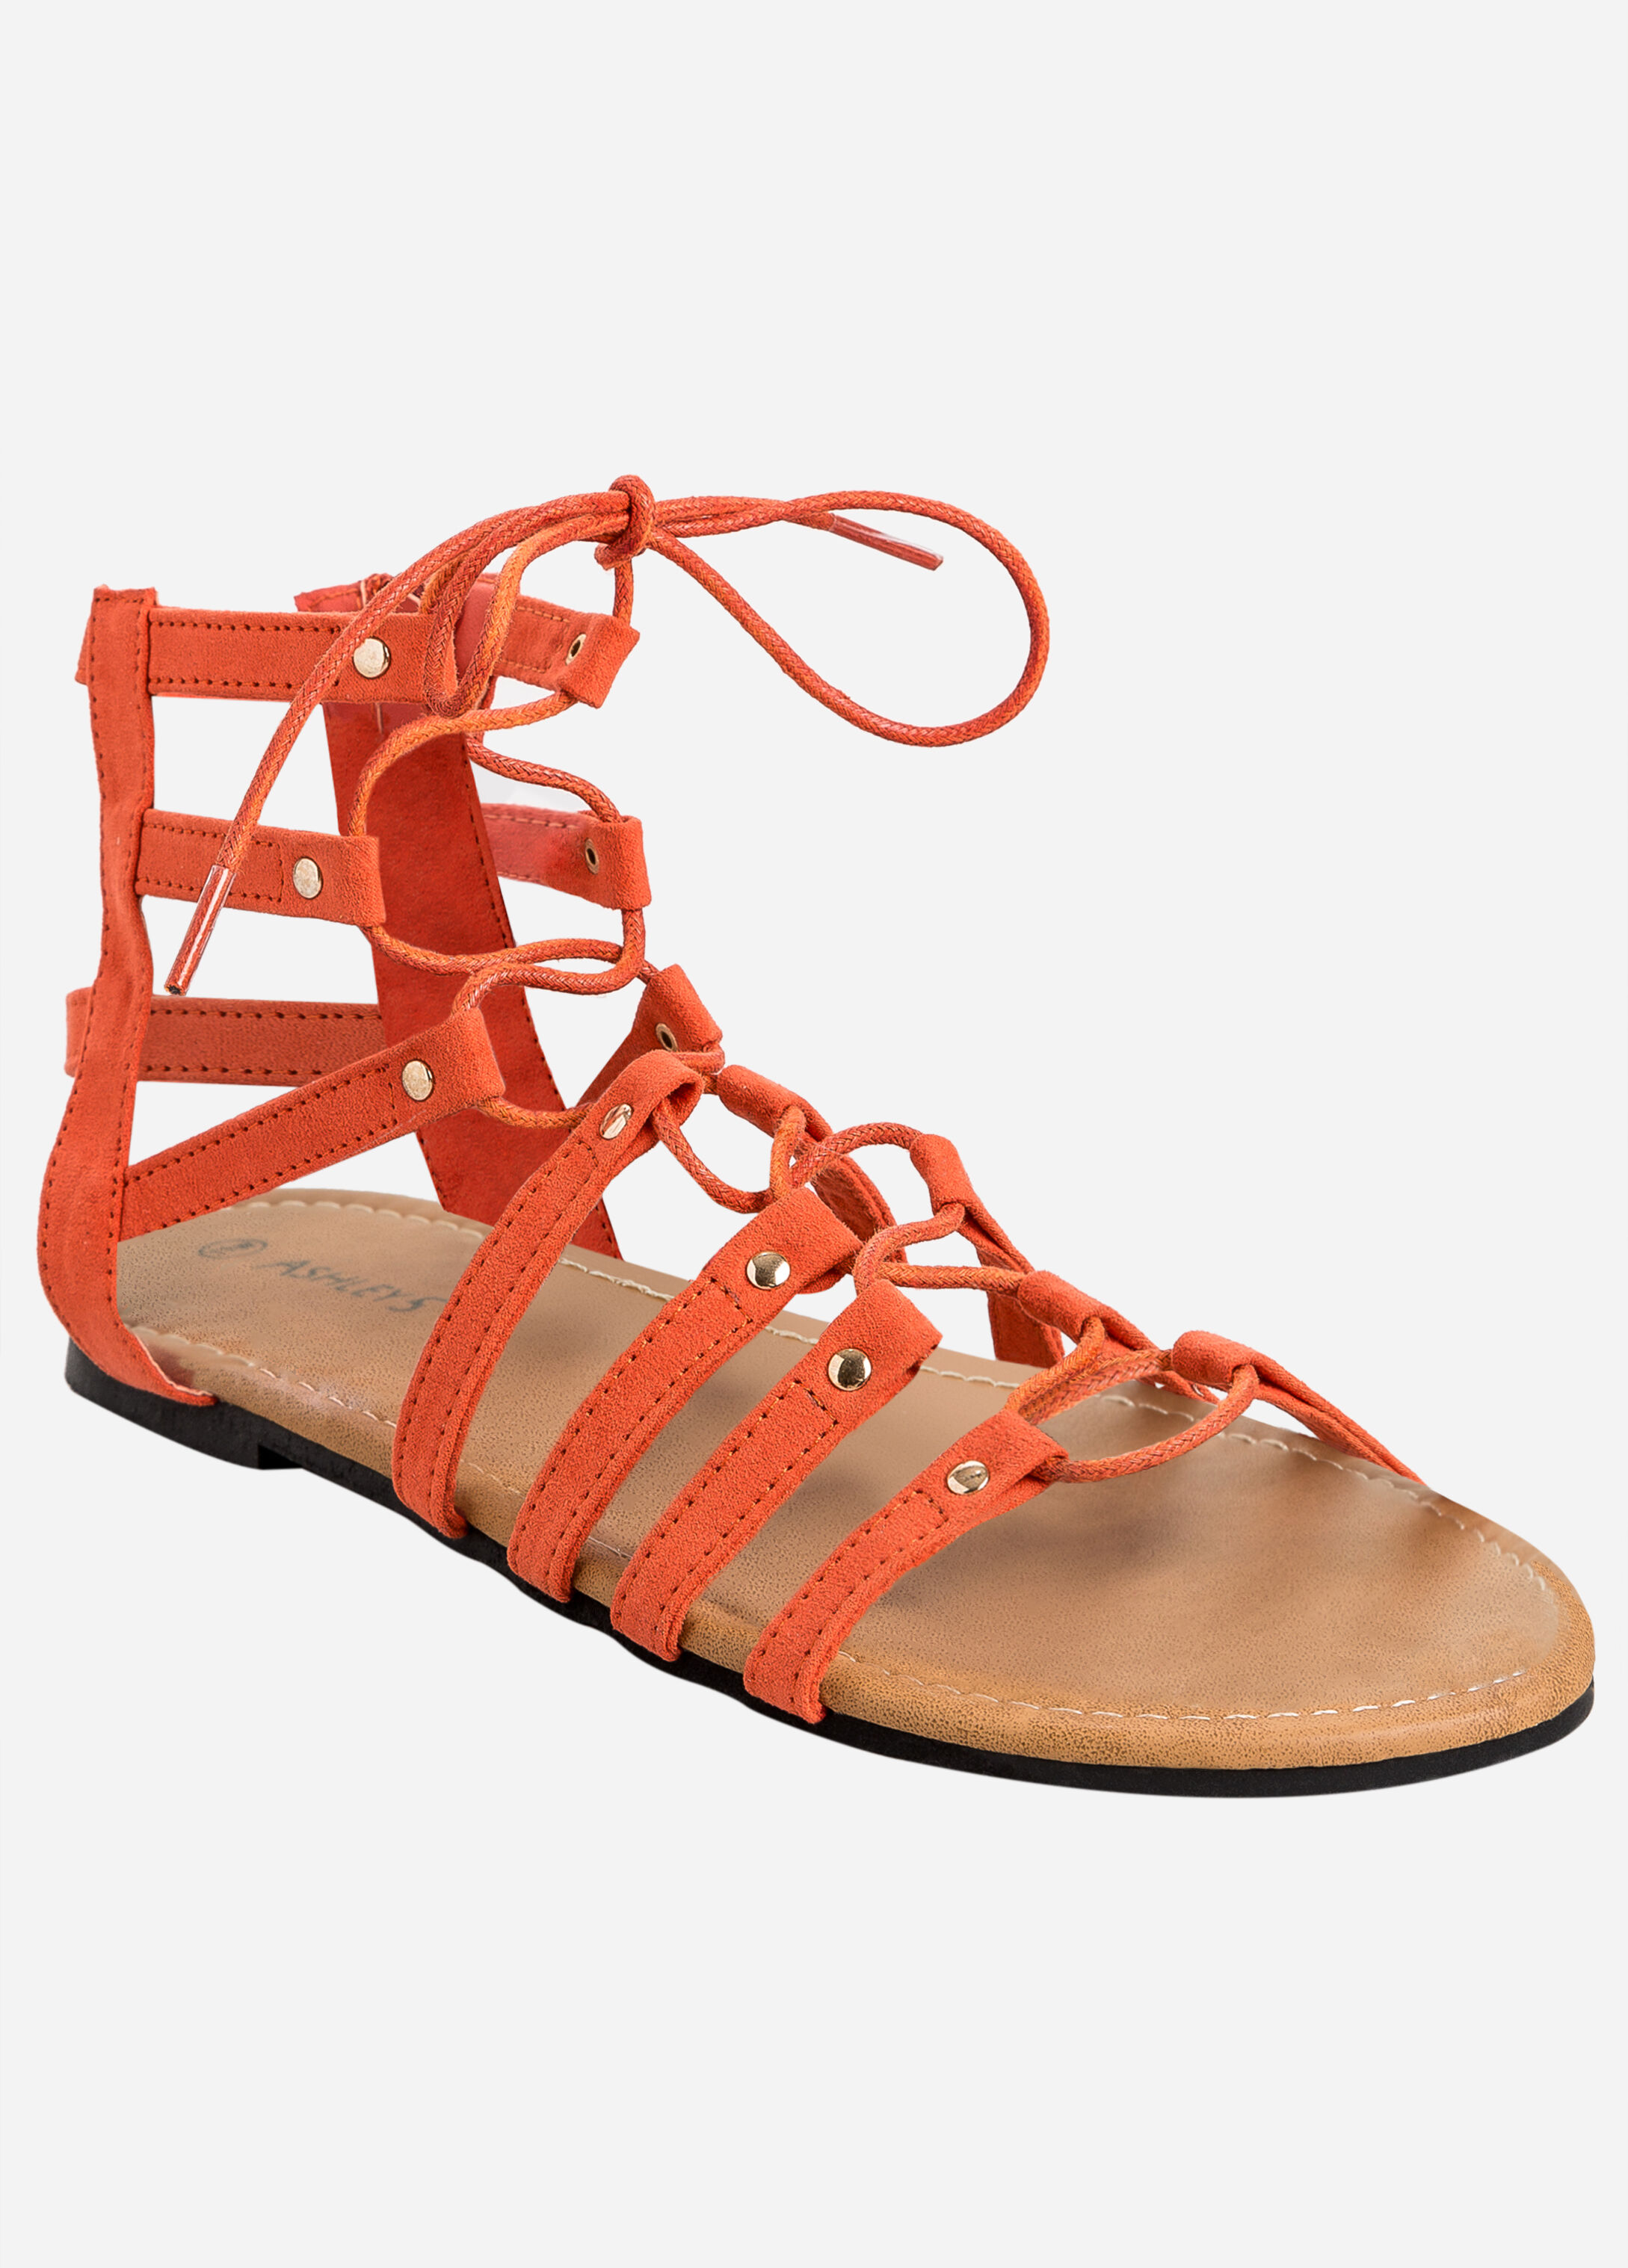 Strappy Lace Up Flat Sandal - Wide Width Orange - Clearance